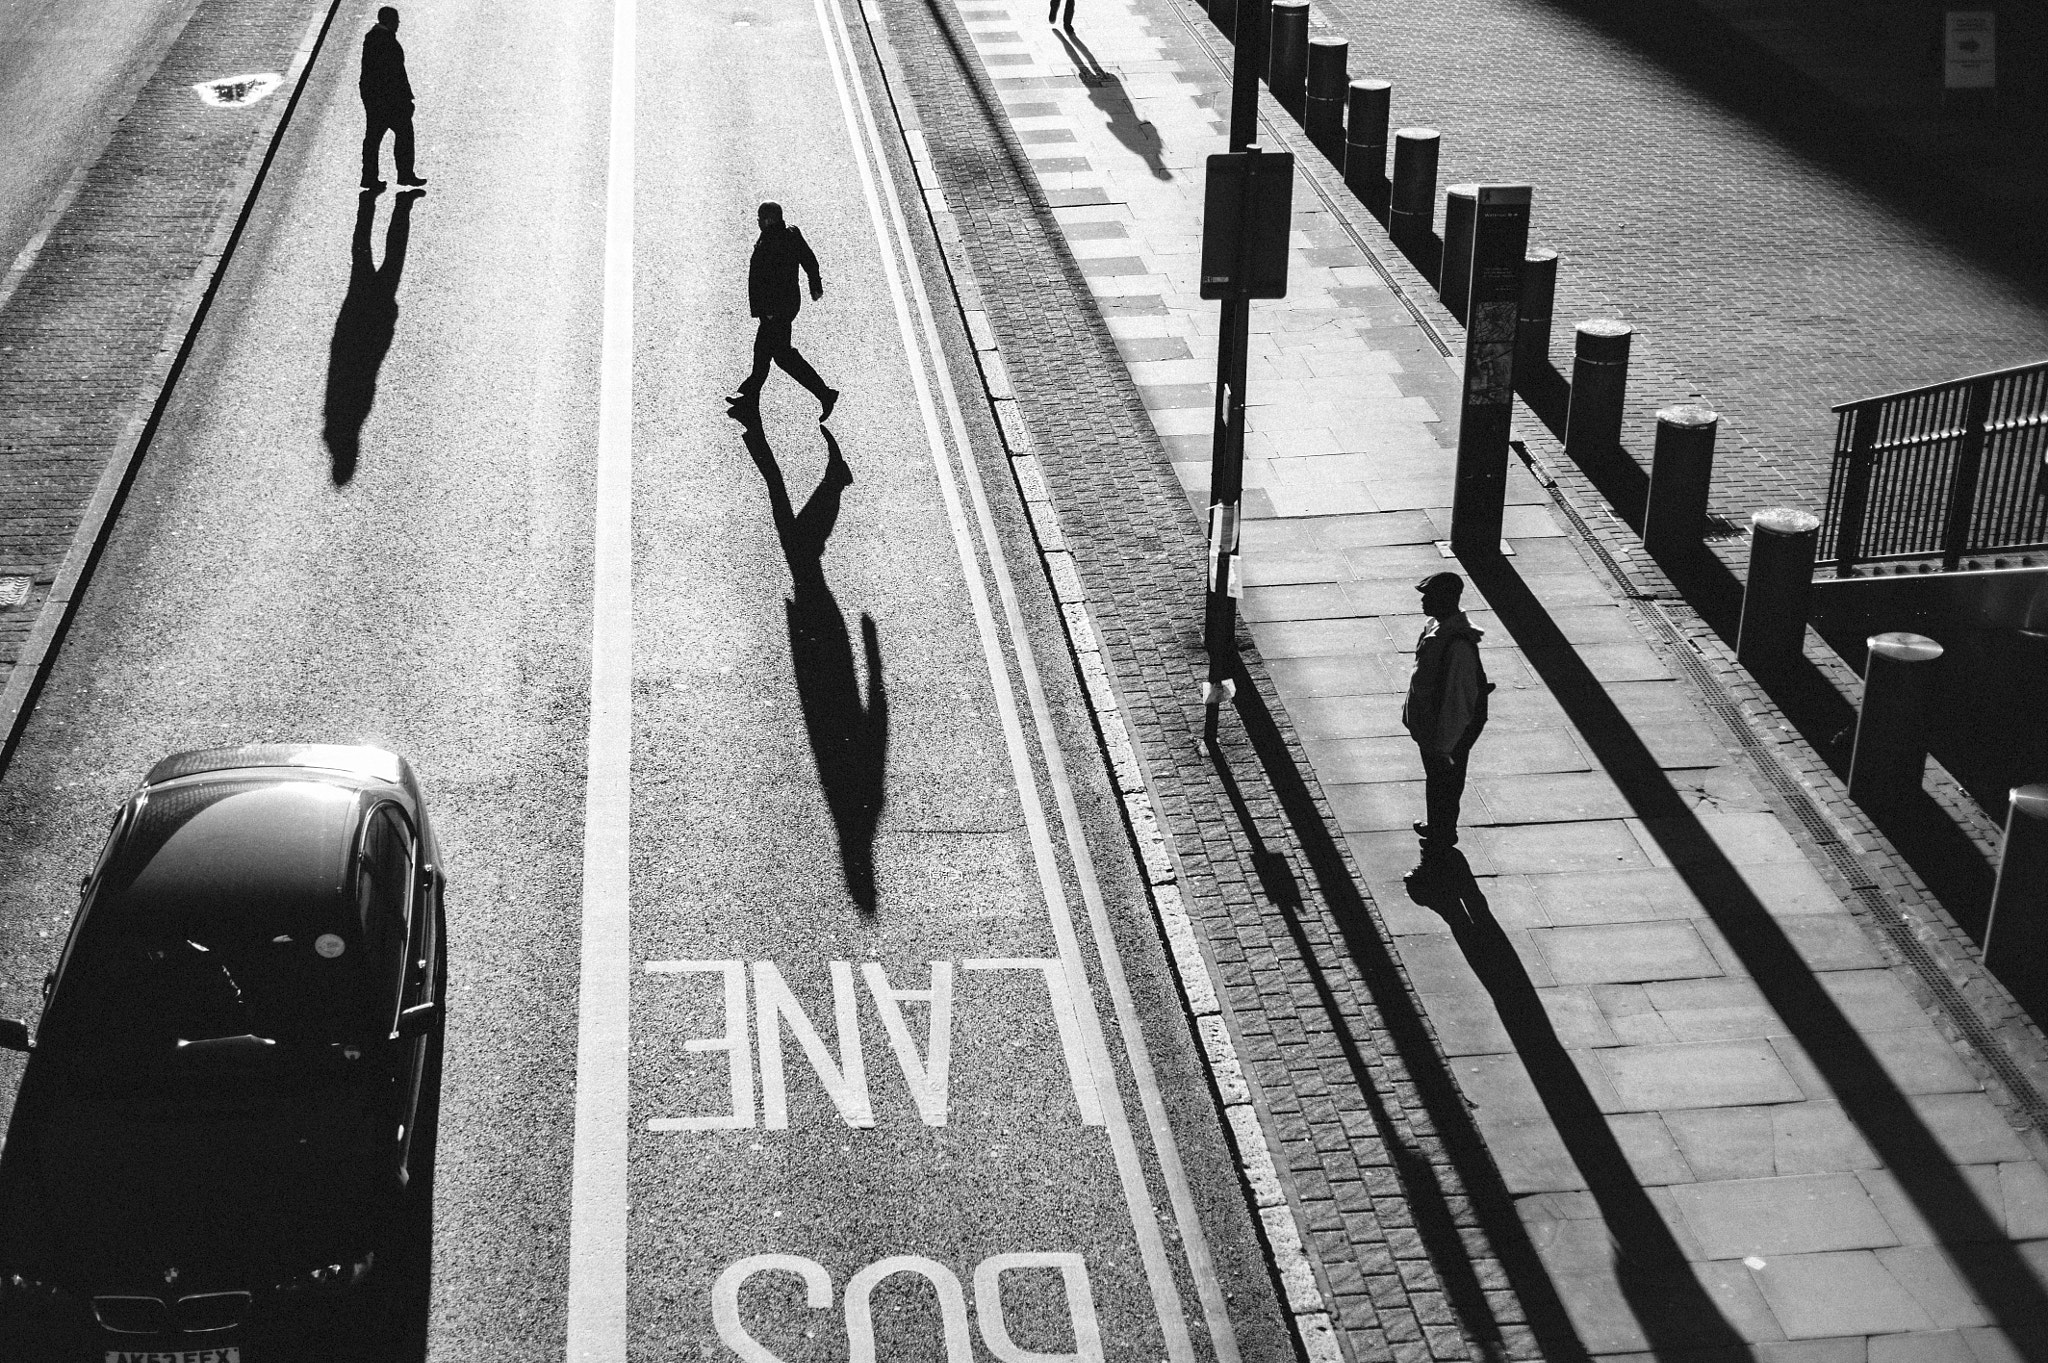 Photograph Crossing by Paul Bence on 500px